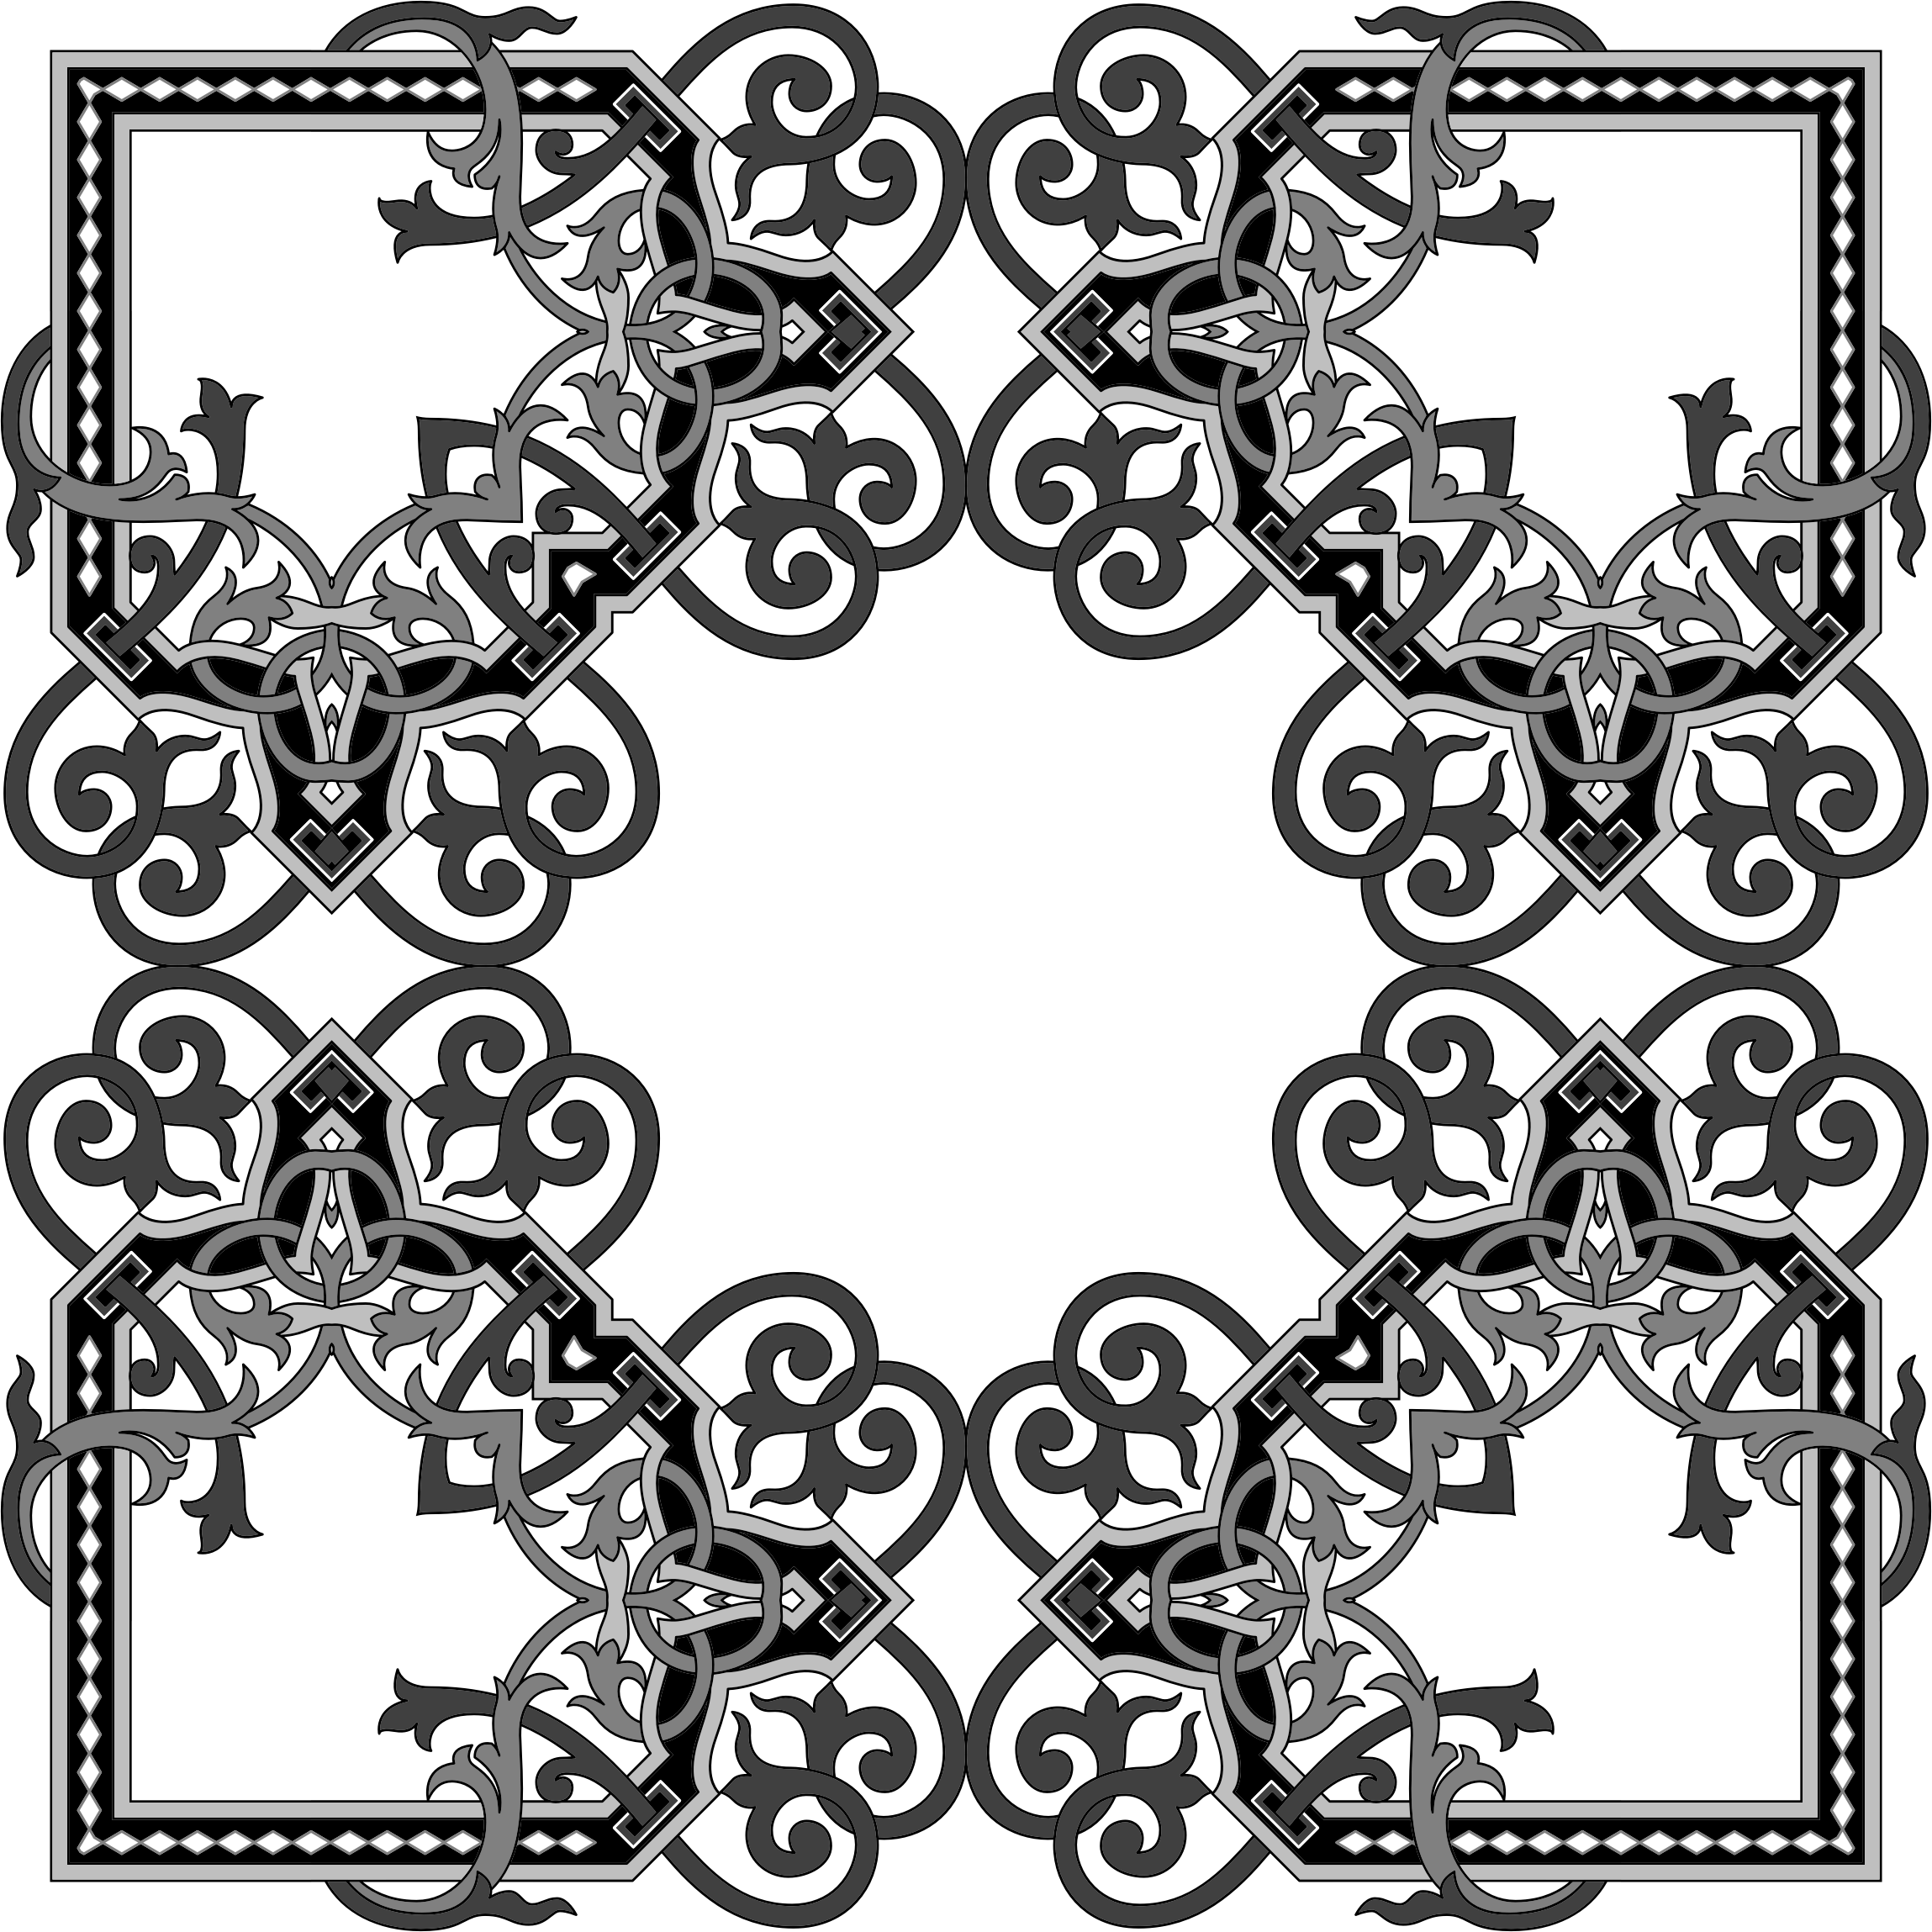 Floral Flourish Frame Interpolated 5 by GDJ